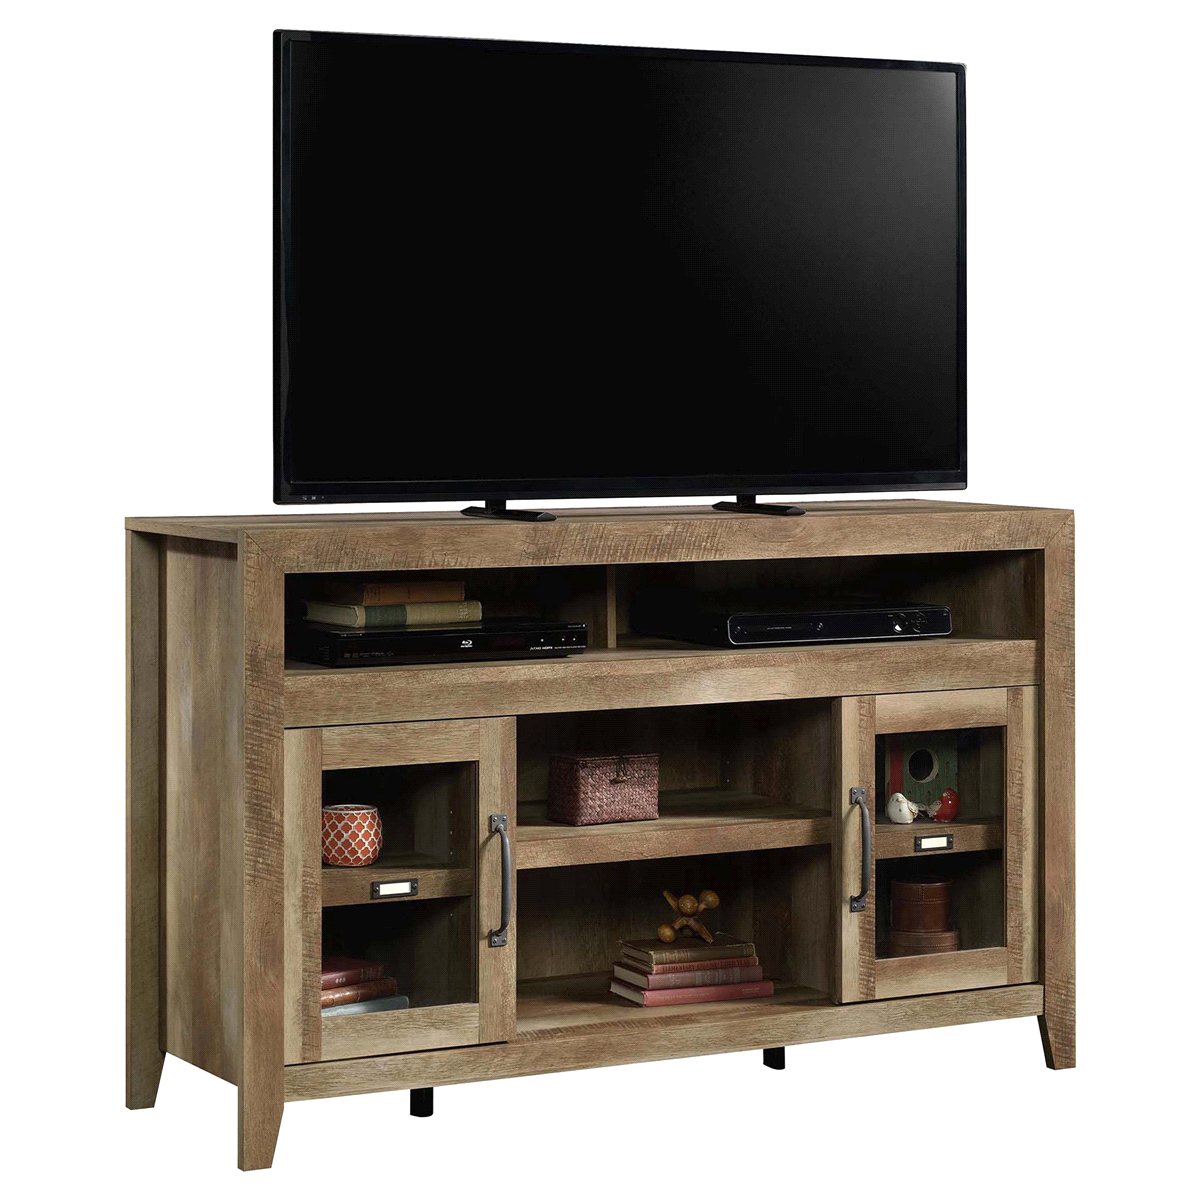 furniture meijer grocery pharmacy home more sauder end table cinnamon cherry accent tables ethan allen buffet glass tops wooden crate for dog toys laura ashley window mirror